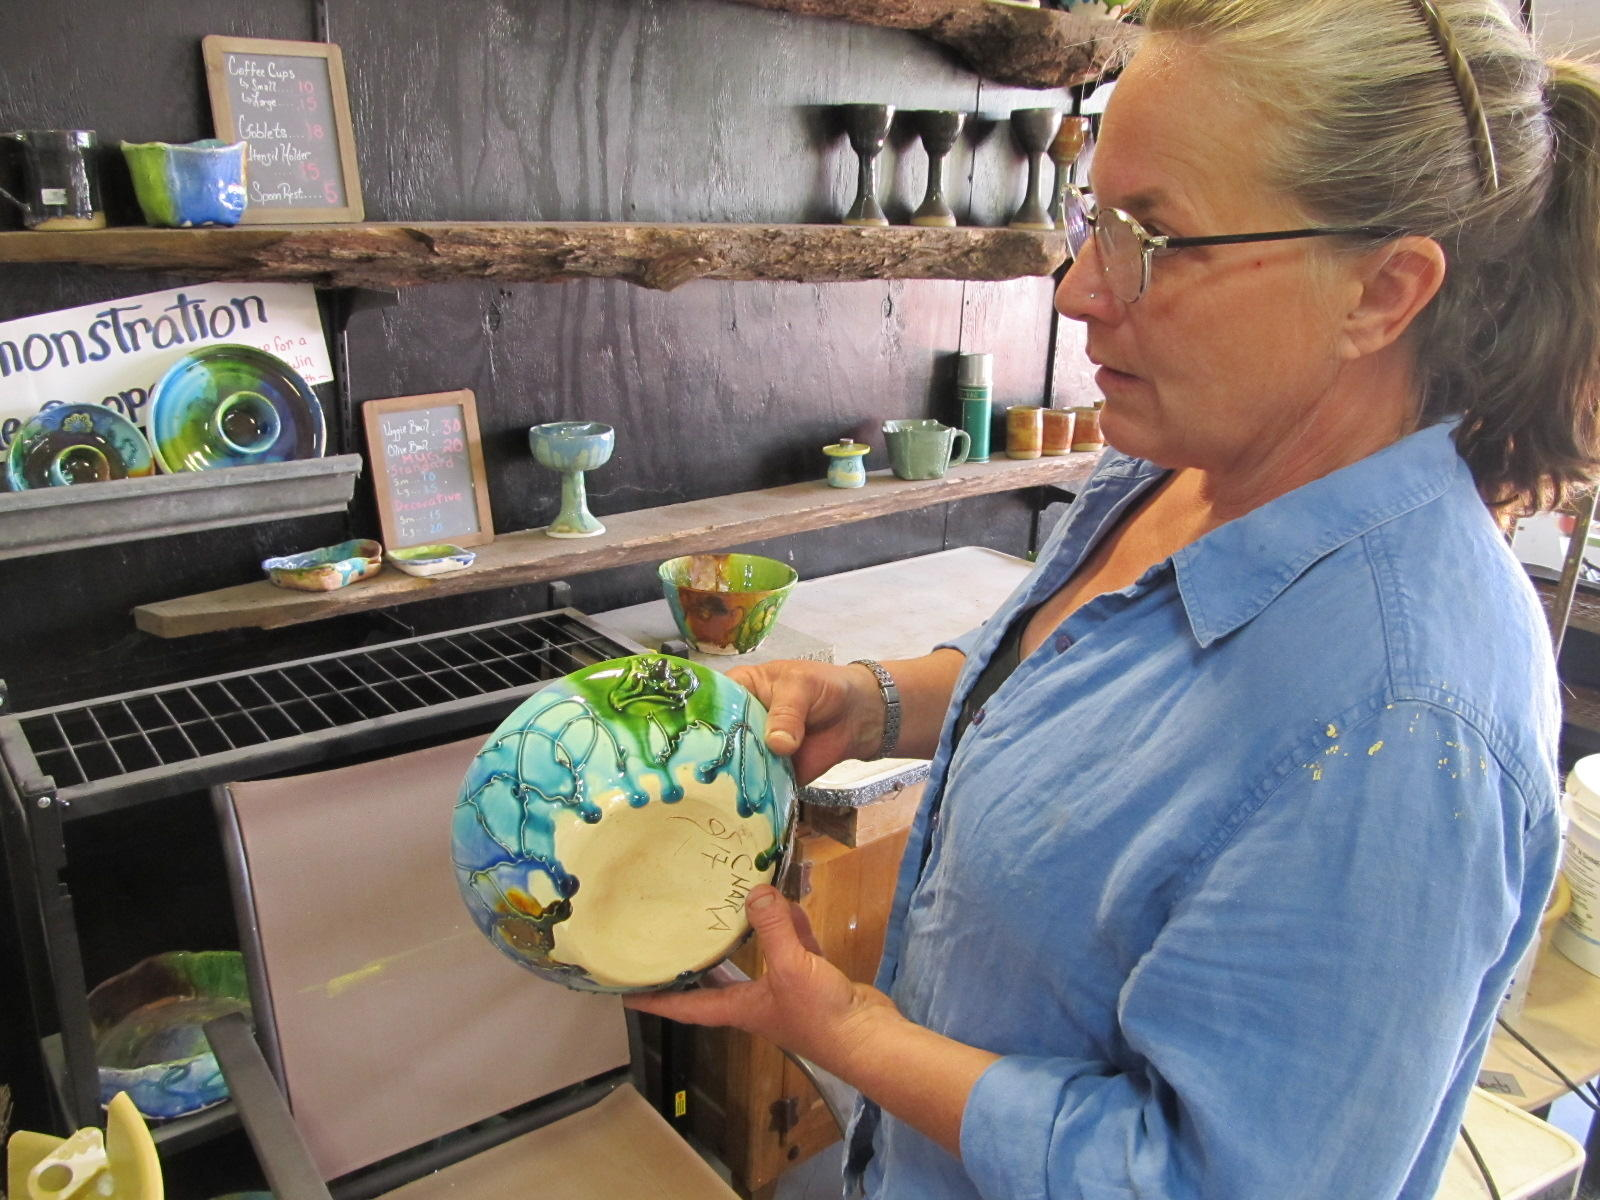 Sally Jane Cooper of Chara Pottery Studio with a piece in one of several styles she works in. She and Tonya Hardy will demonstrate ceramic techniques and show their work at the studio for the tour.  (photo courtesy of Guy/Stephens/WNIJ)